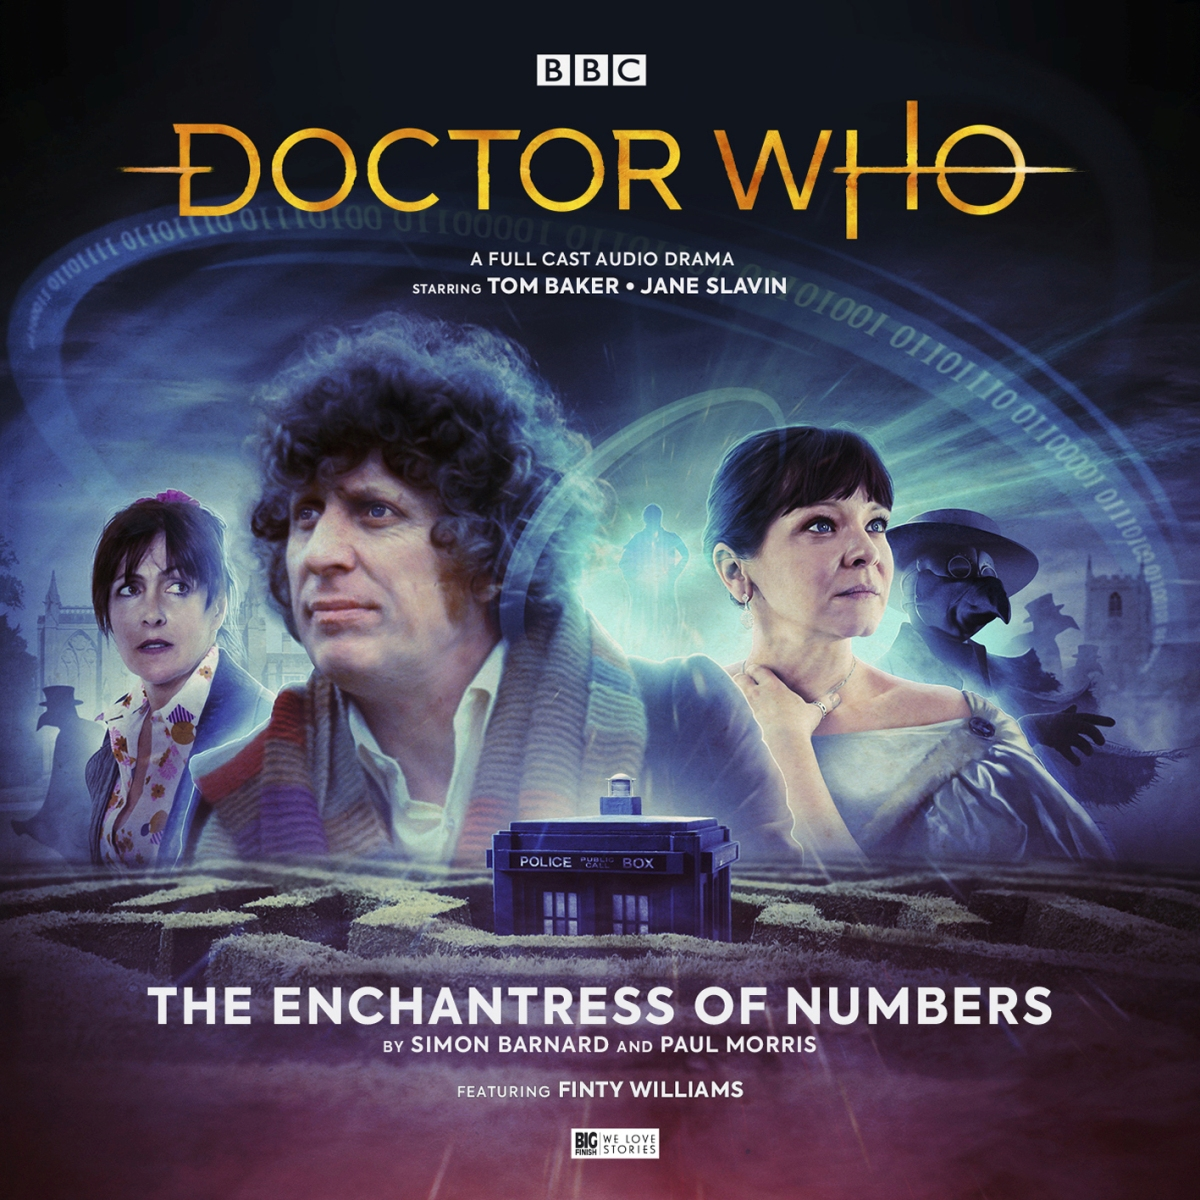 The Enchantress of Numbers review